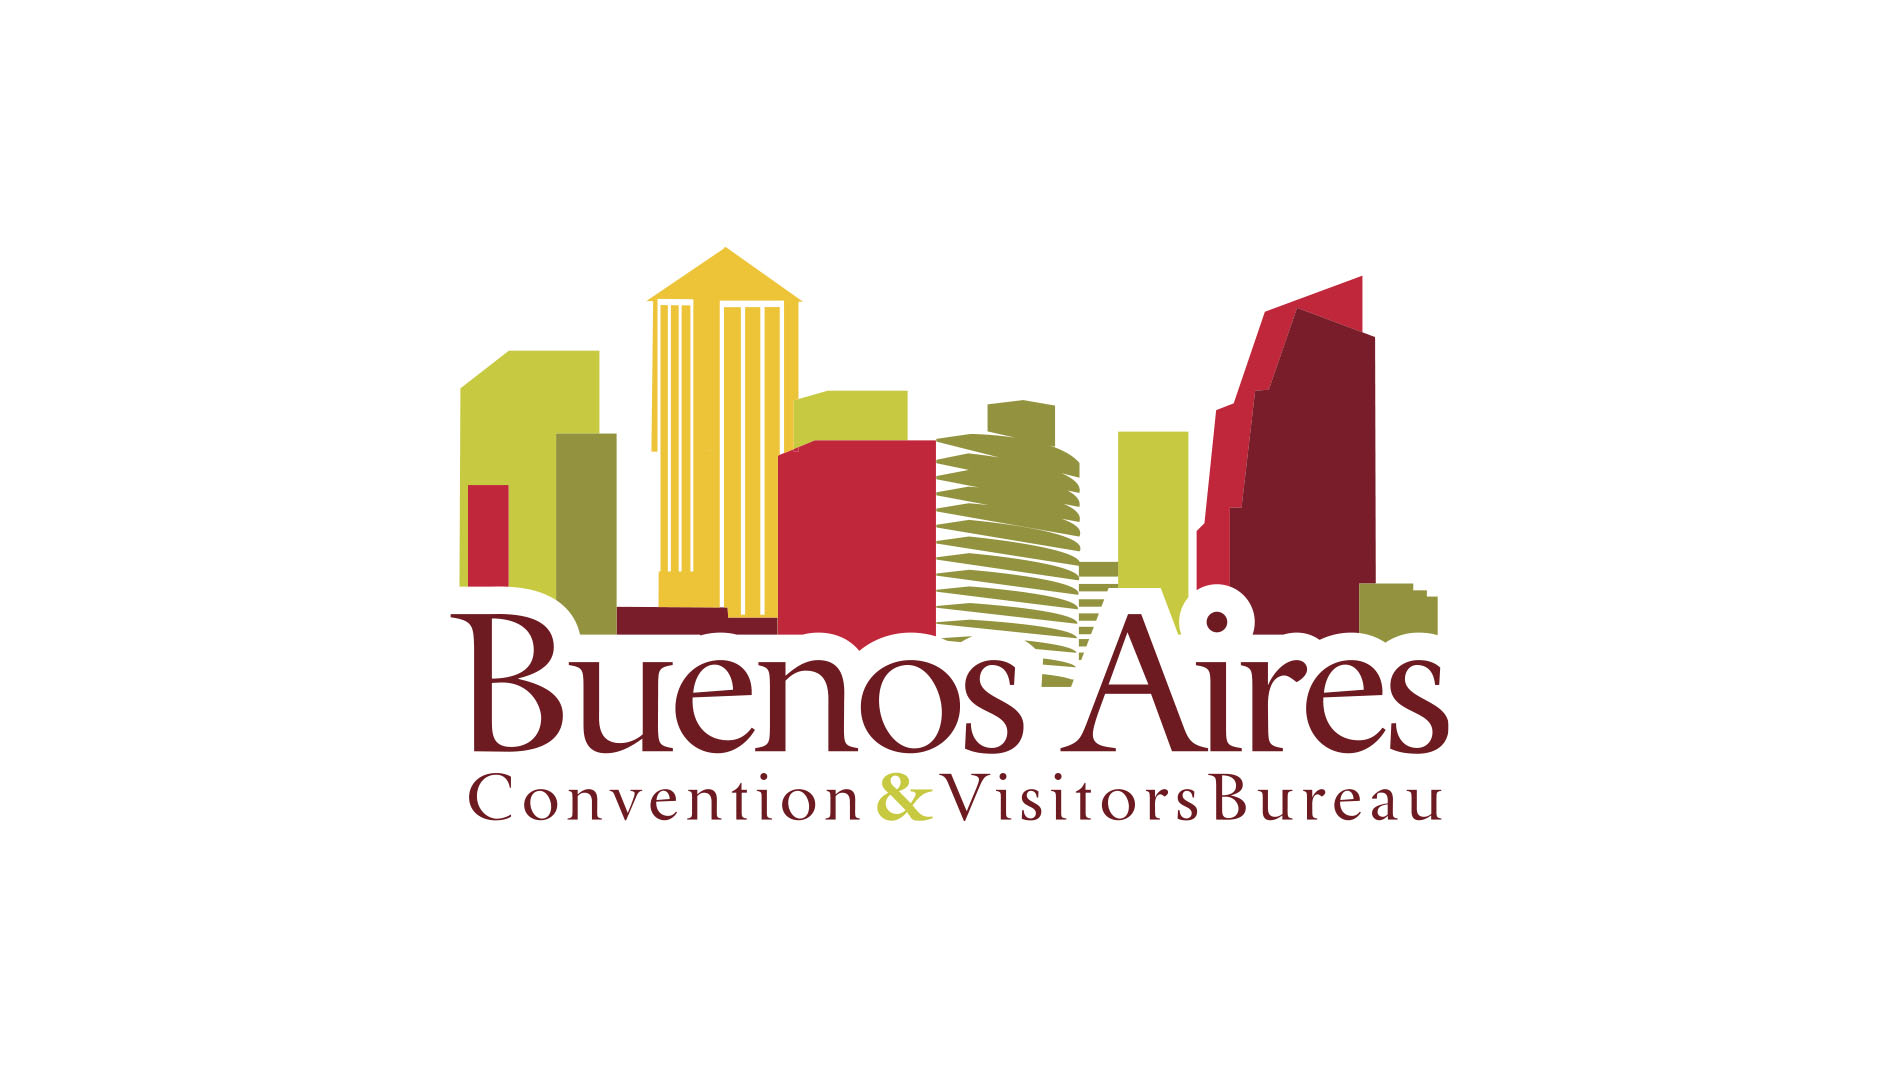 Buenos Aires Convention & Visitors Bureau